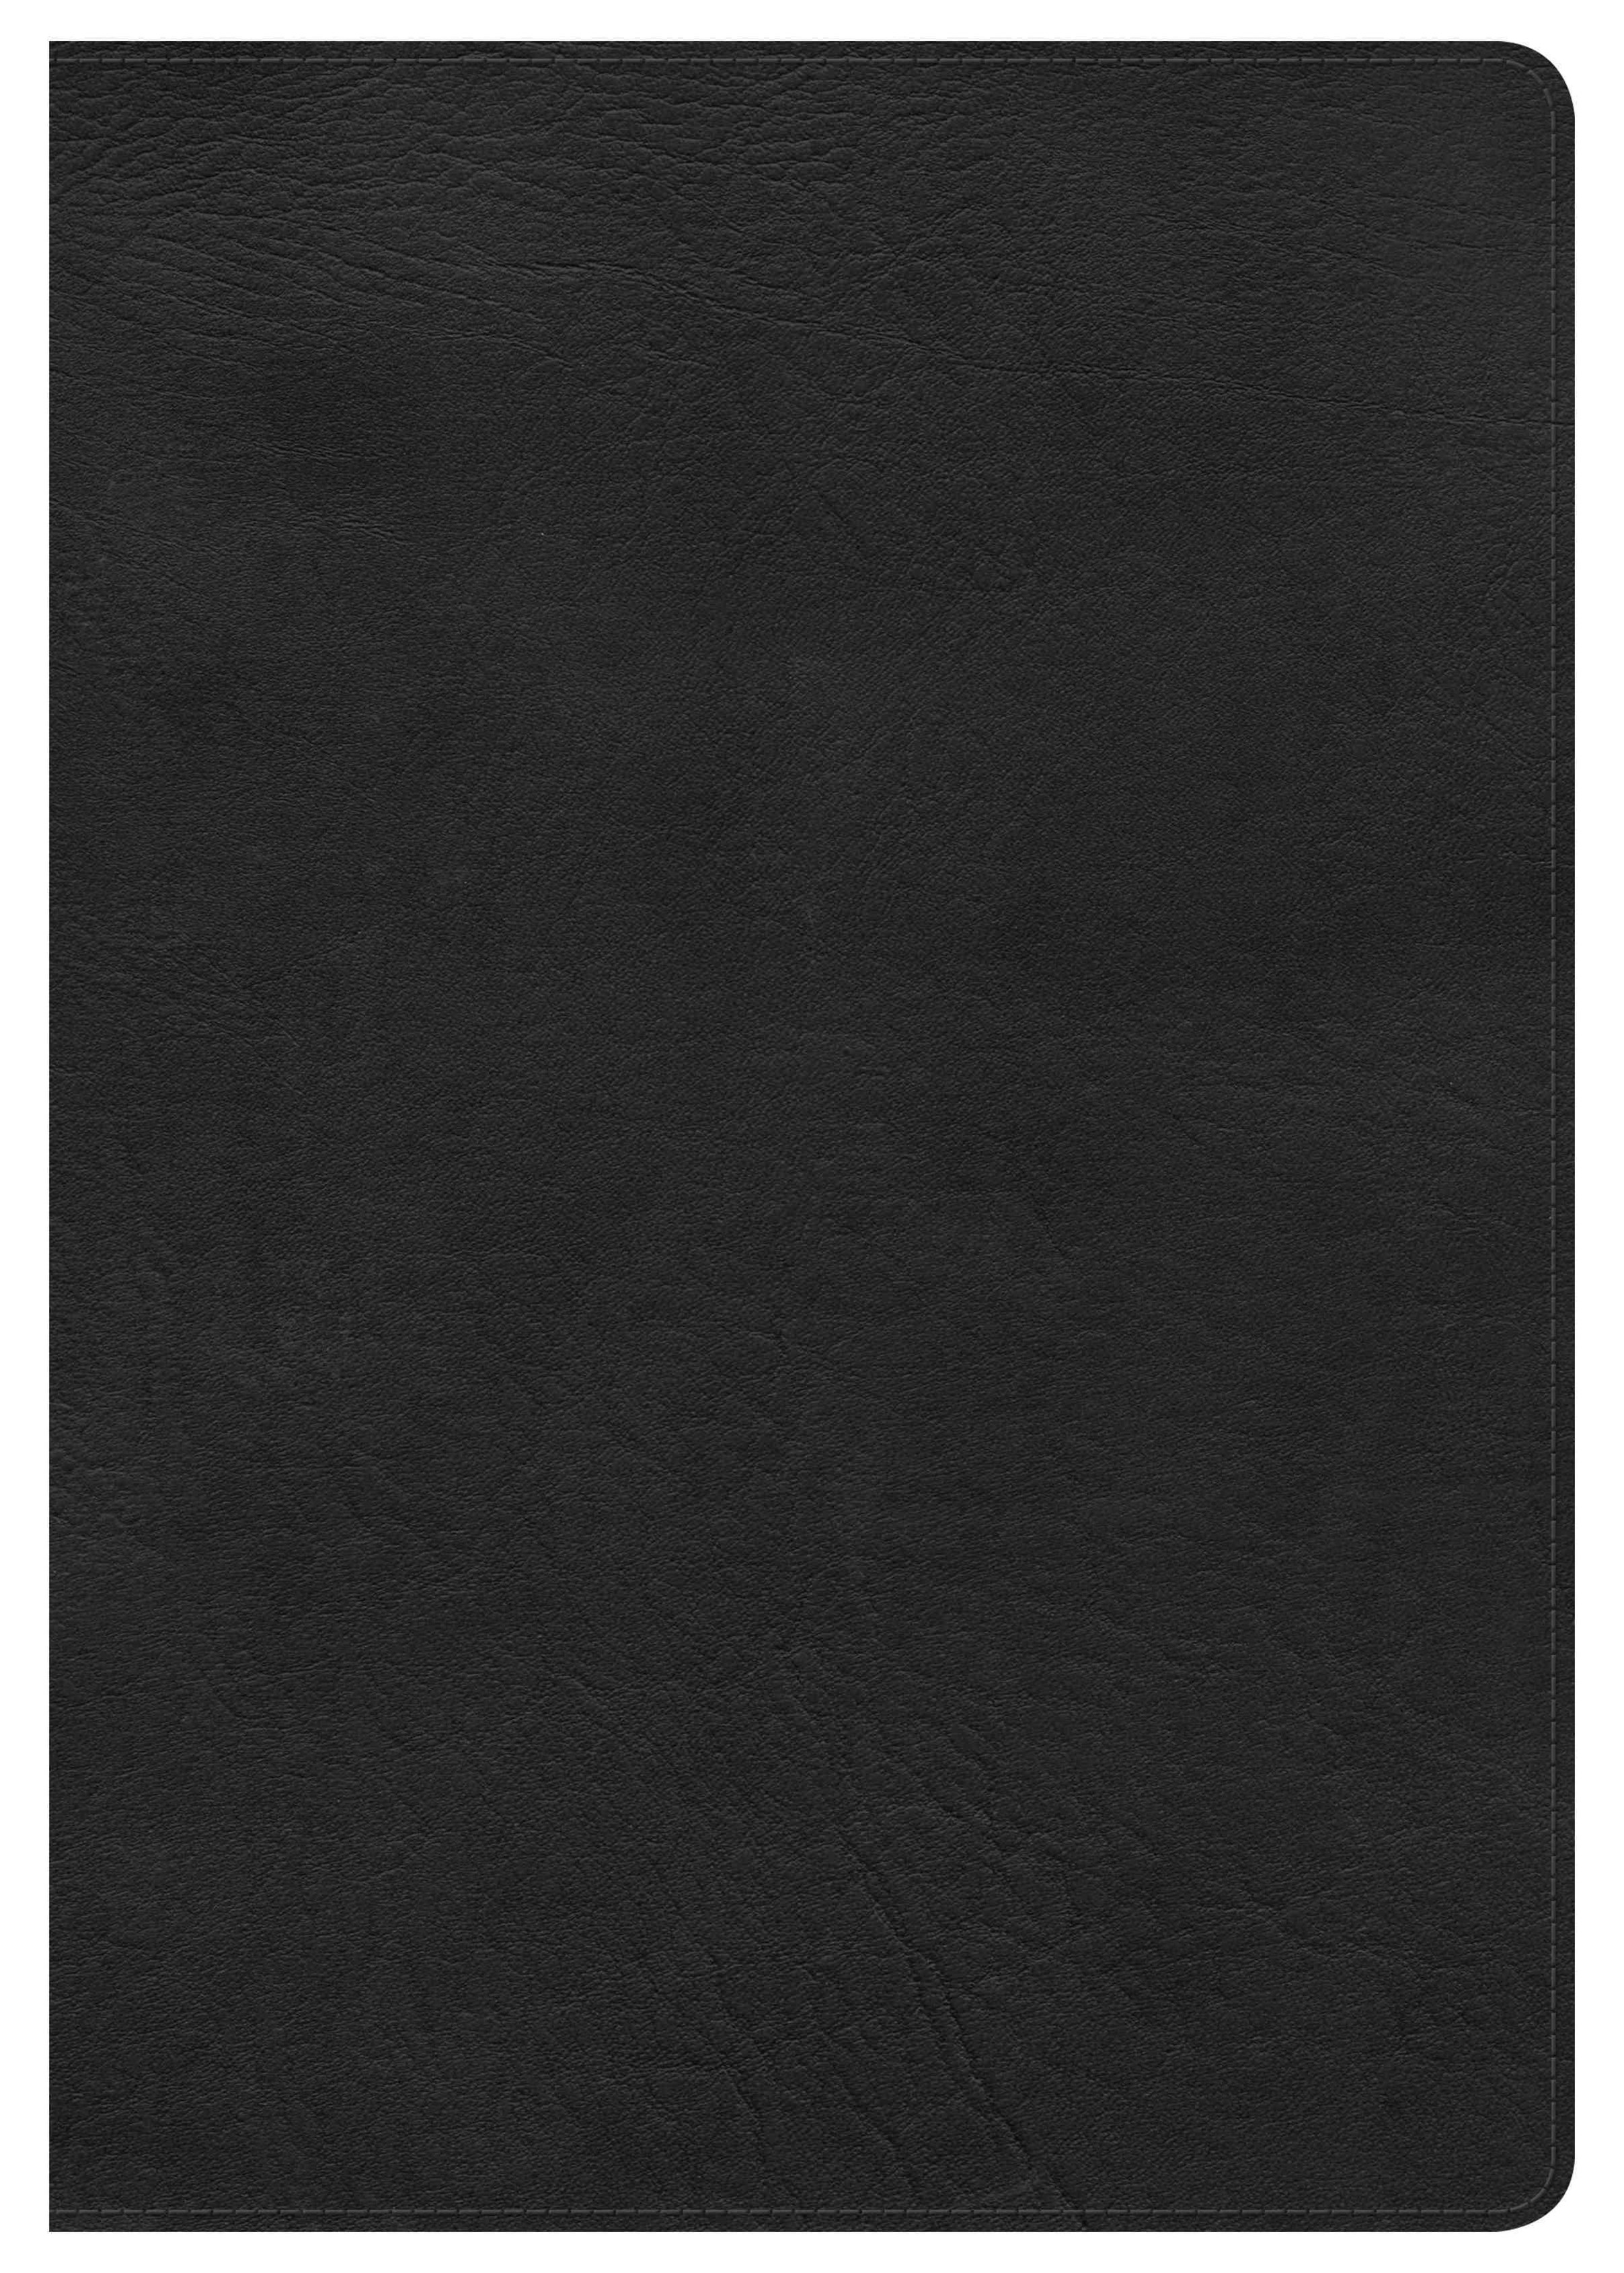 HCSB Super Giant Print Reference Bible, Black LeatherTouch, Indexed